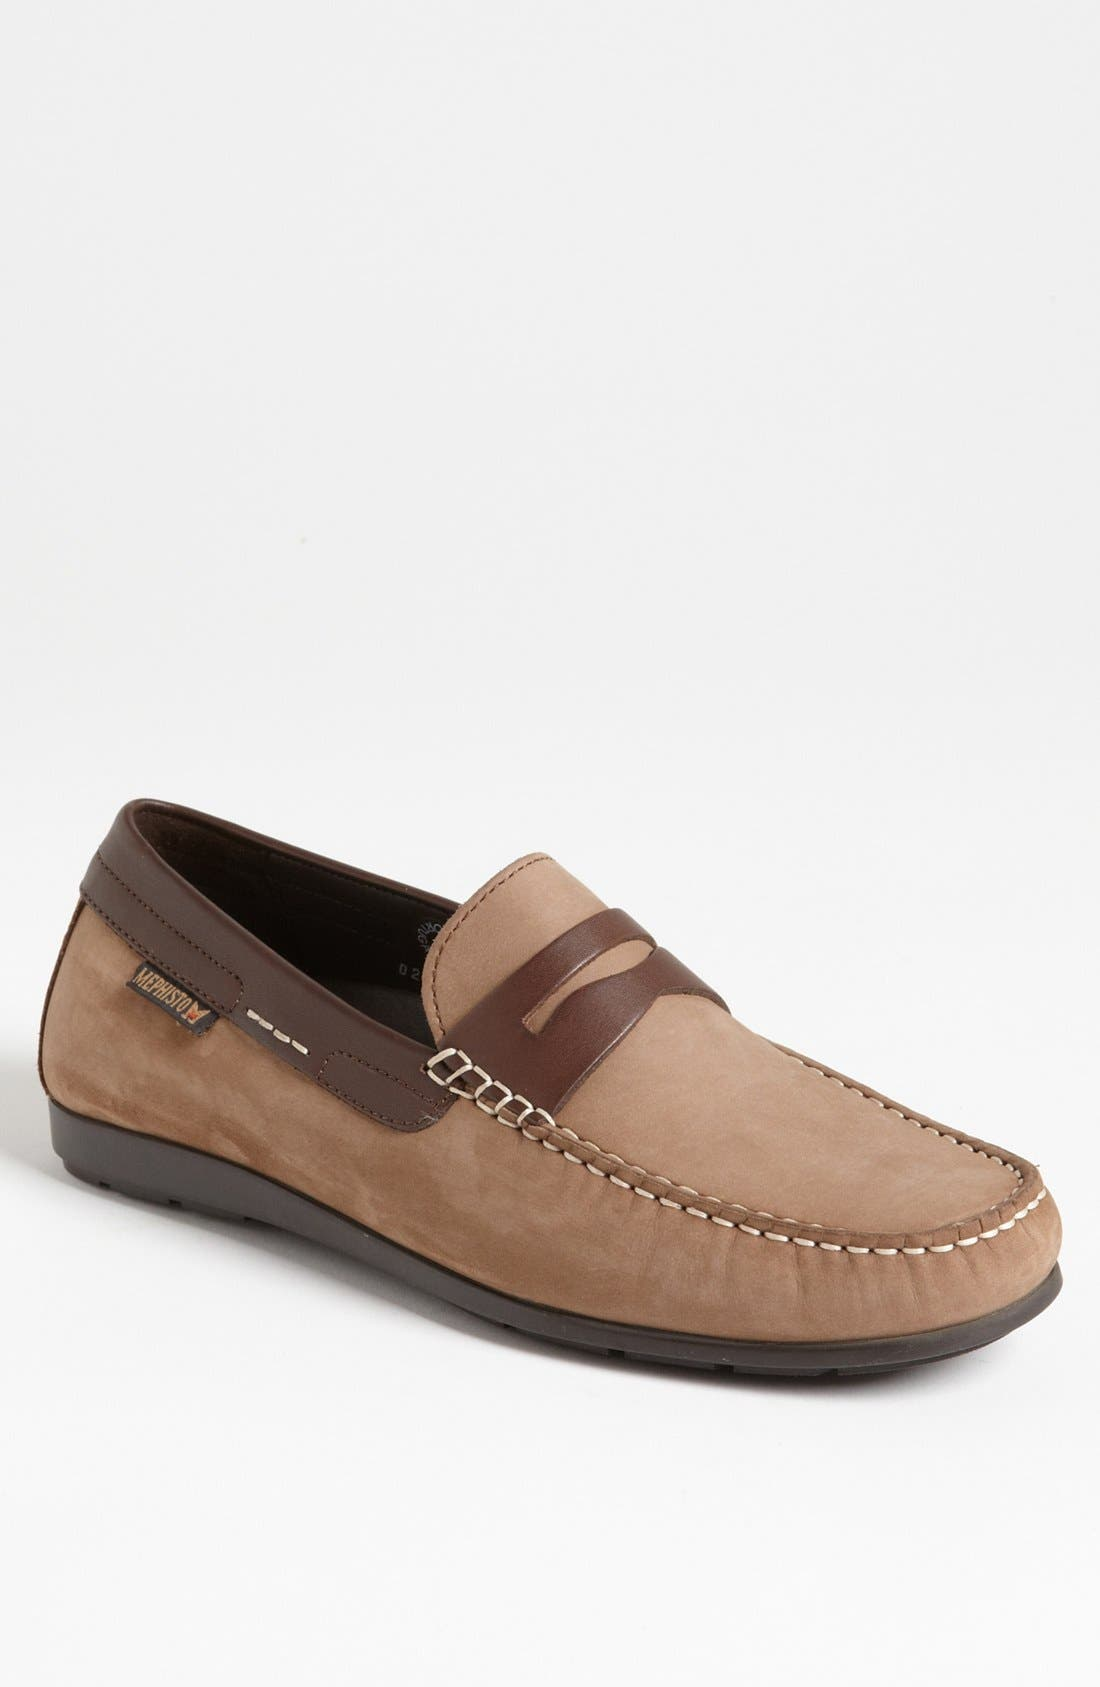 Main Image - Mephisto 'Alyon' Penny Loafer